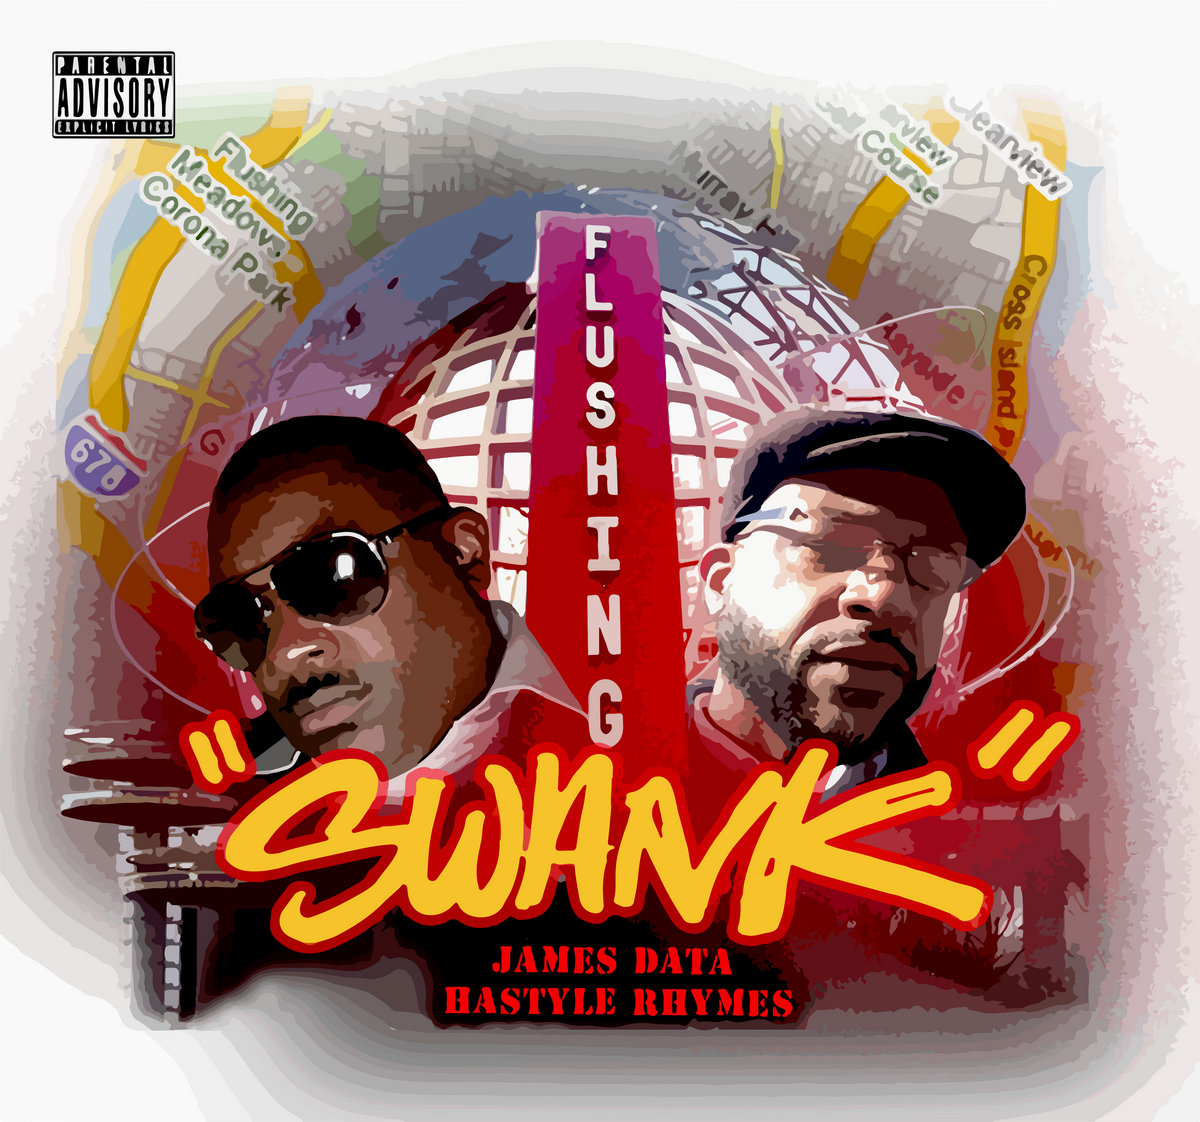 Swank feat. Hastyle Rhymes by James Data